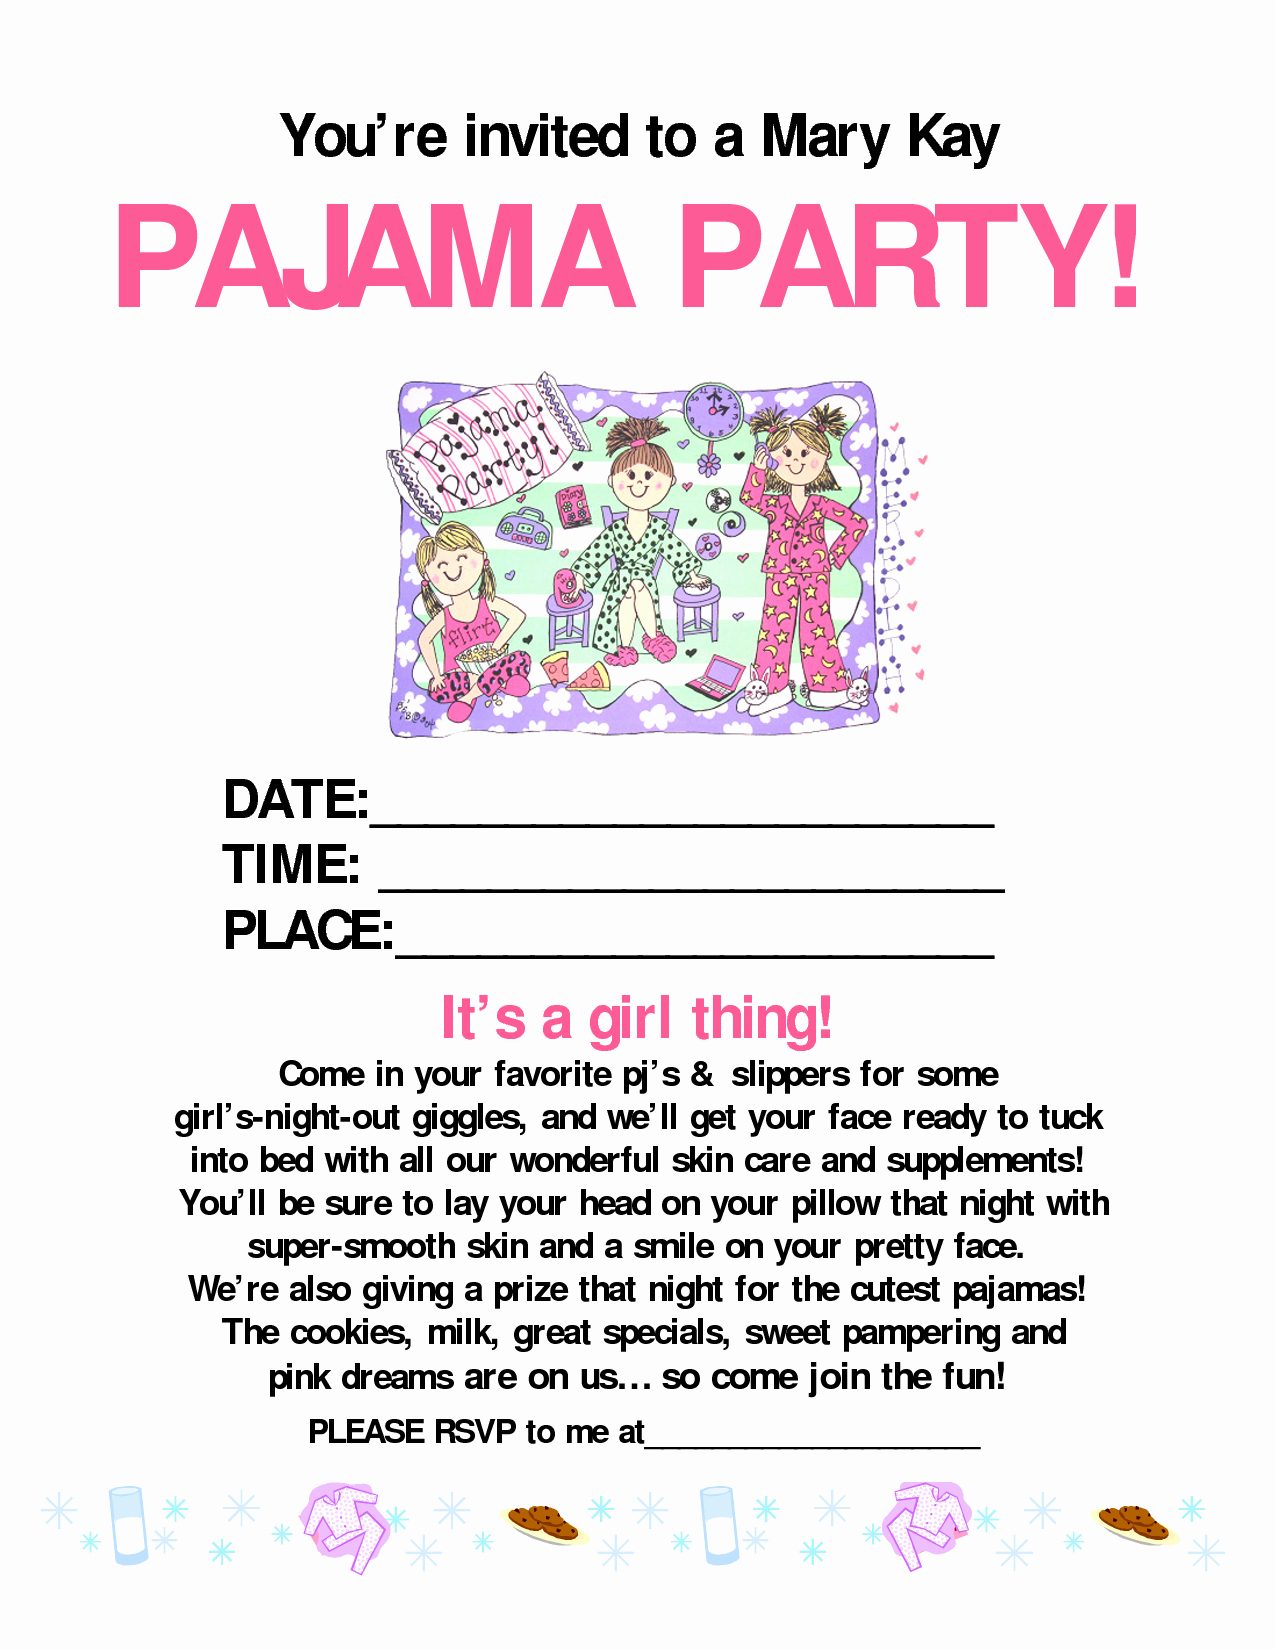 Mary Kay Party Invitation New Pajama Party Mary Kay Mary Kay Pinterest